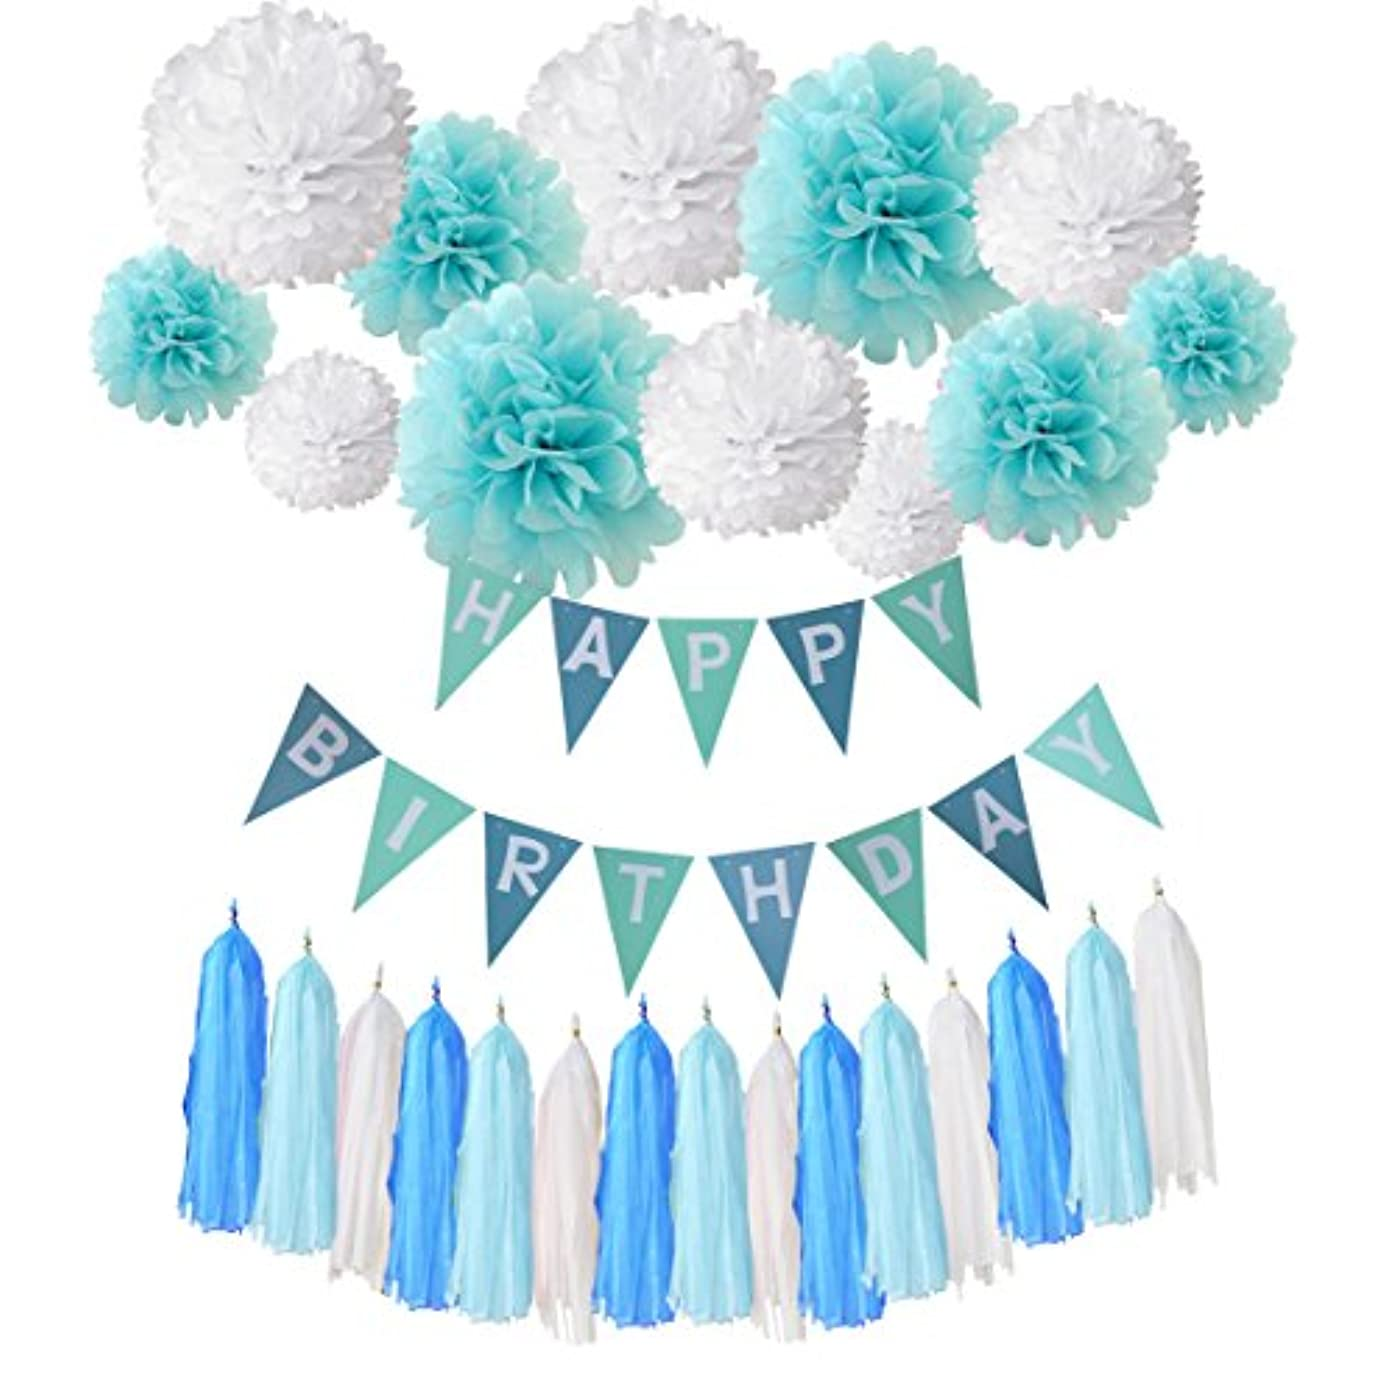 Wartoon Happy Birthday Banner Bunting Kit, Happy Birthday Hanging Party Decorations Banner flags +12 Garlands Tissue Paper Pom Poms flowers Ball + 15 tassels for Birthday Party Decorations (Blue1)